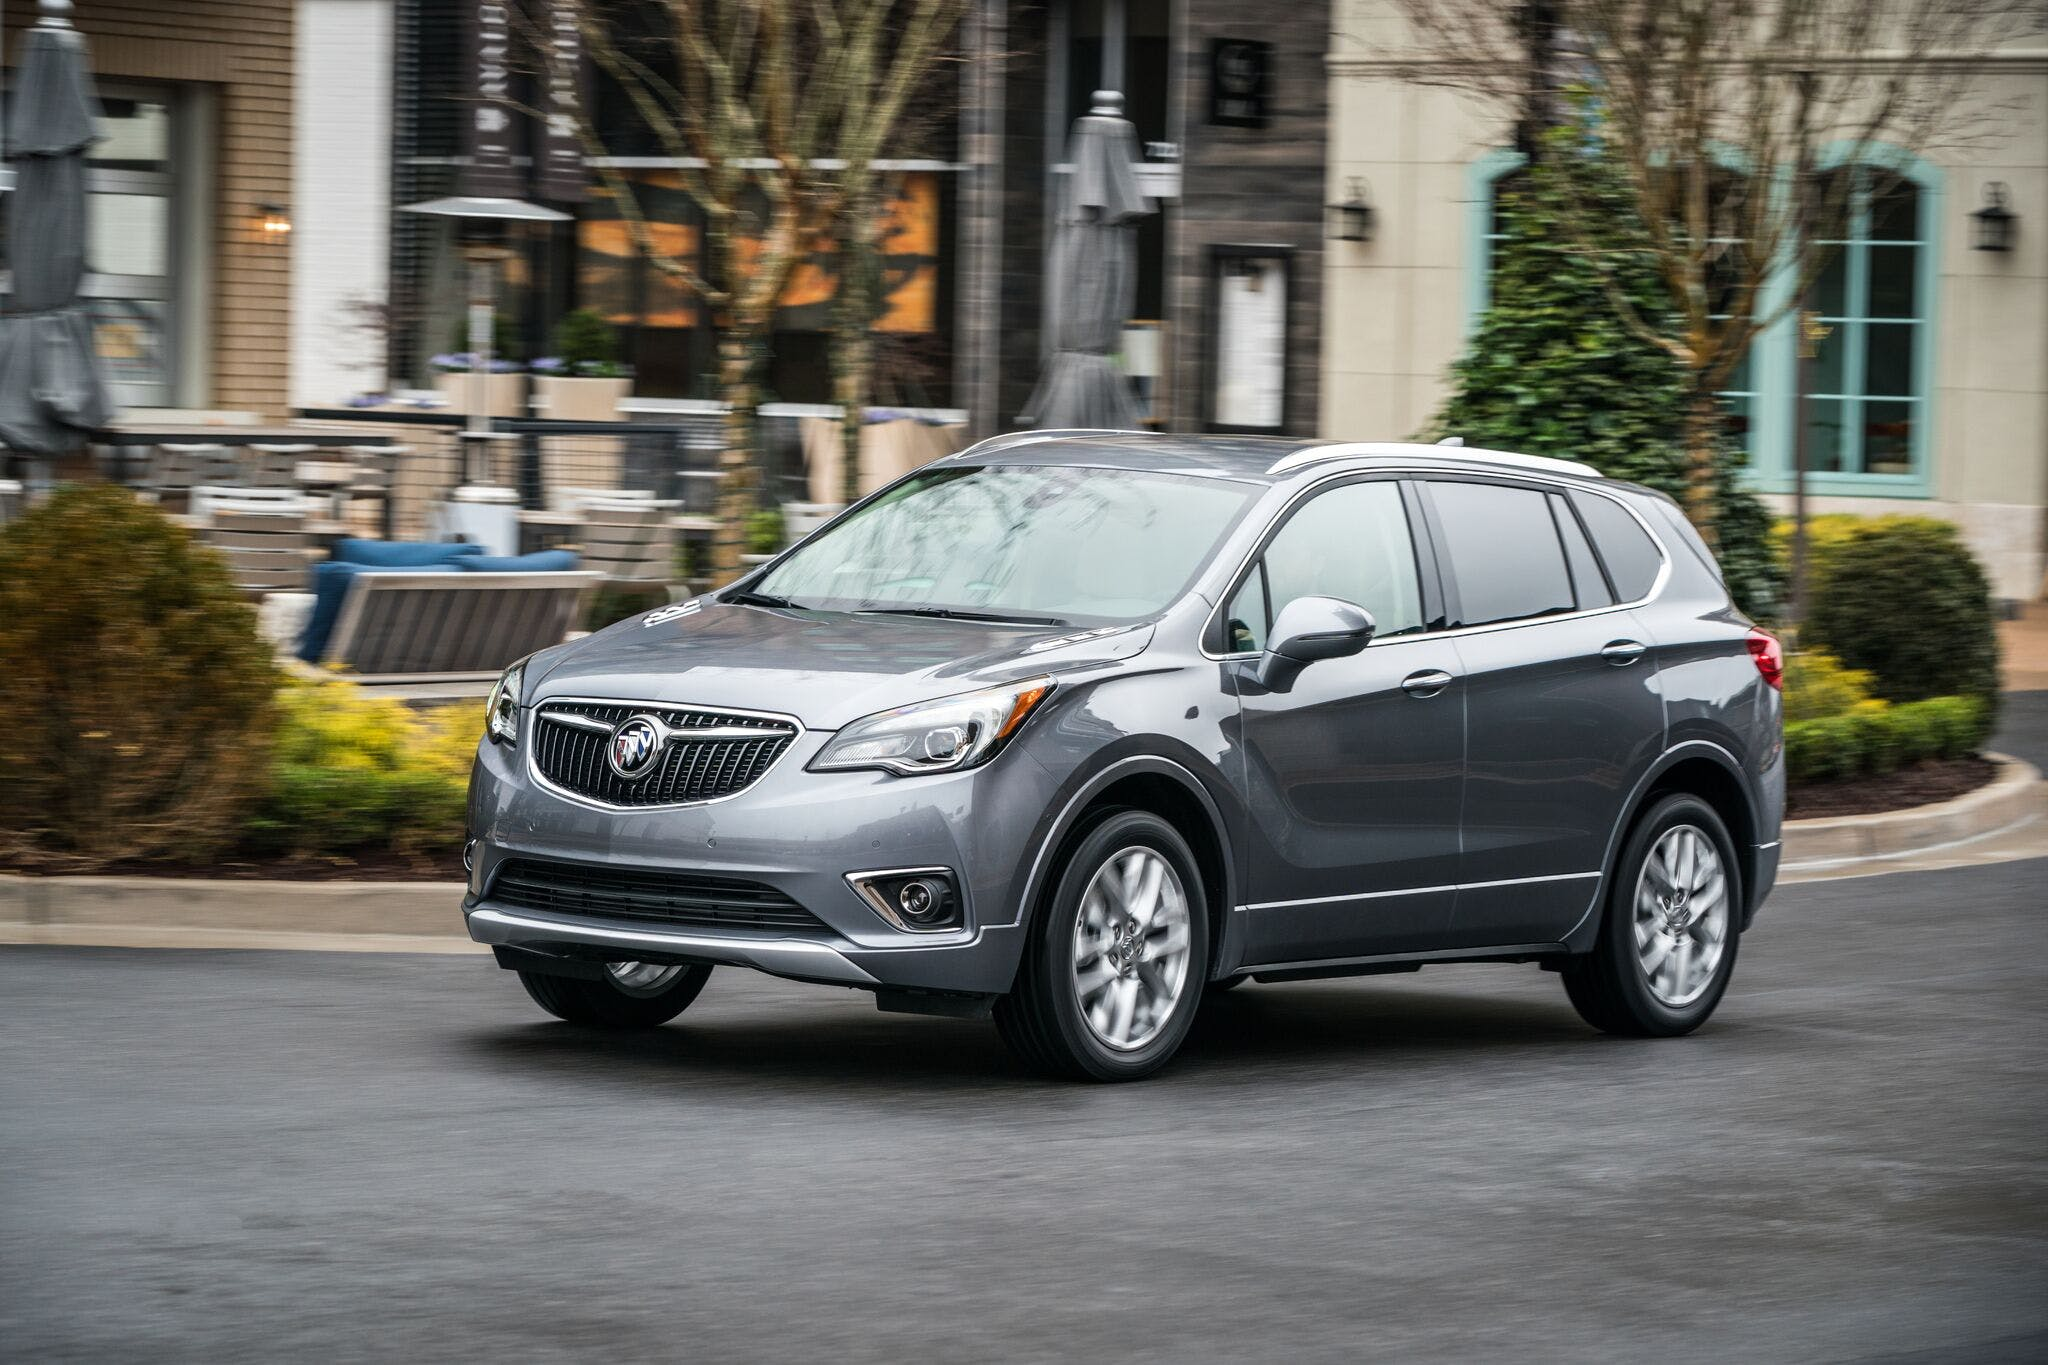 2019 Buick Envision: A Mild Update Offers Some Major Improvements